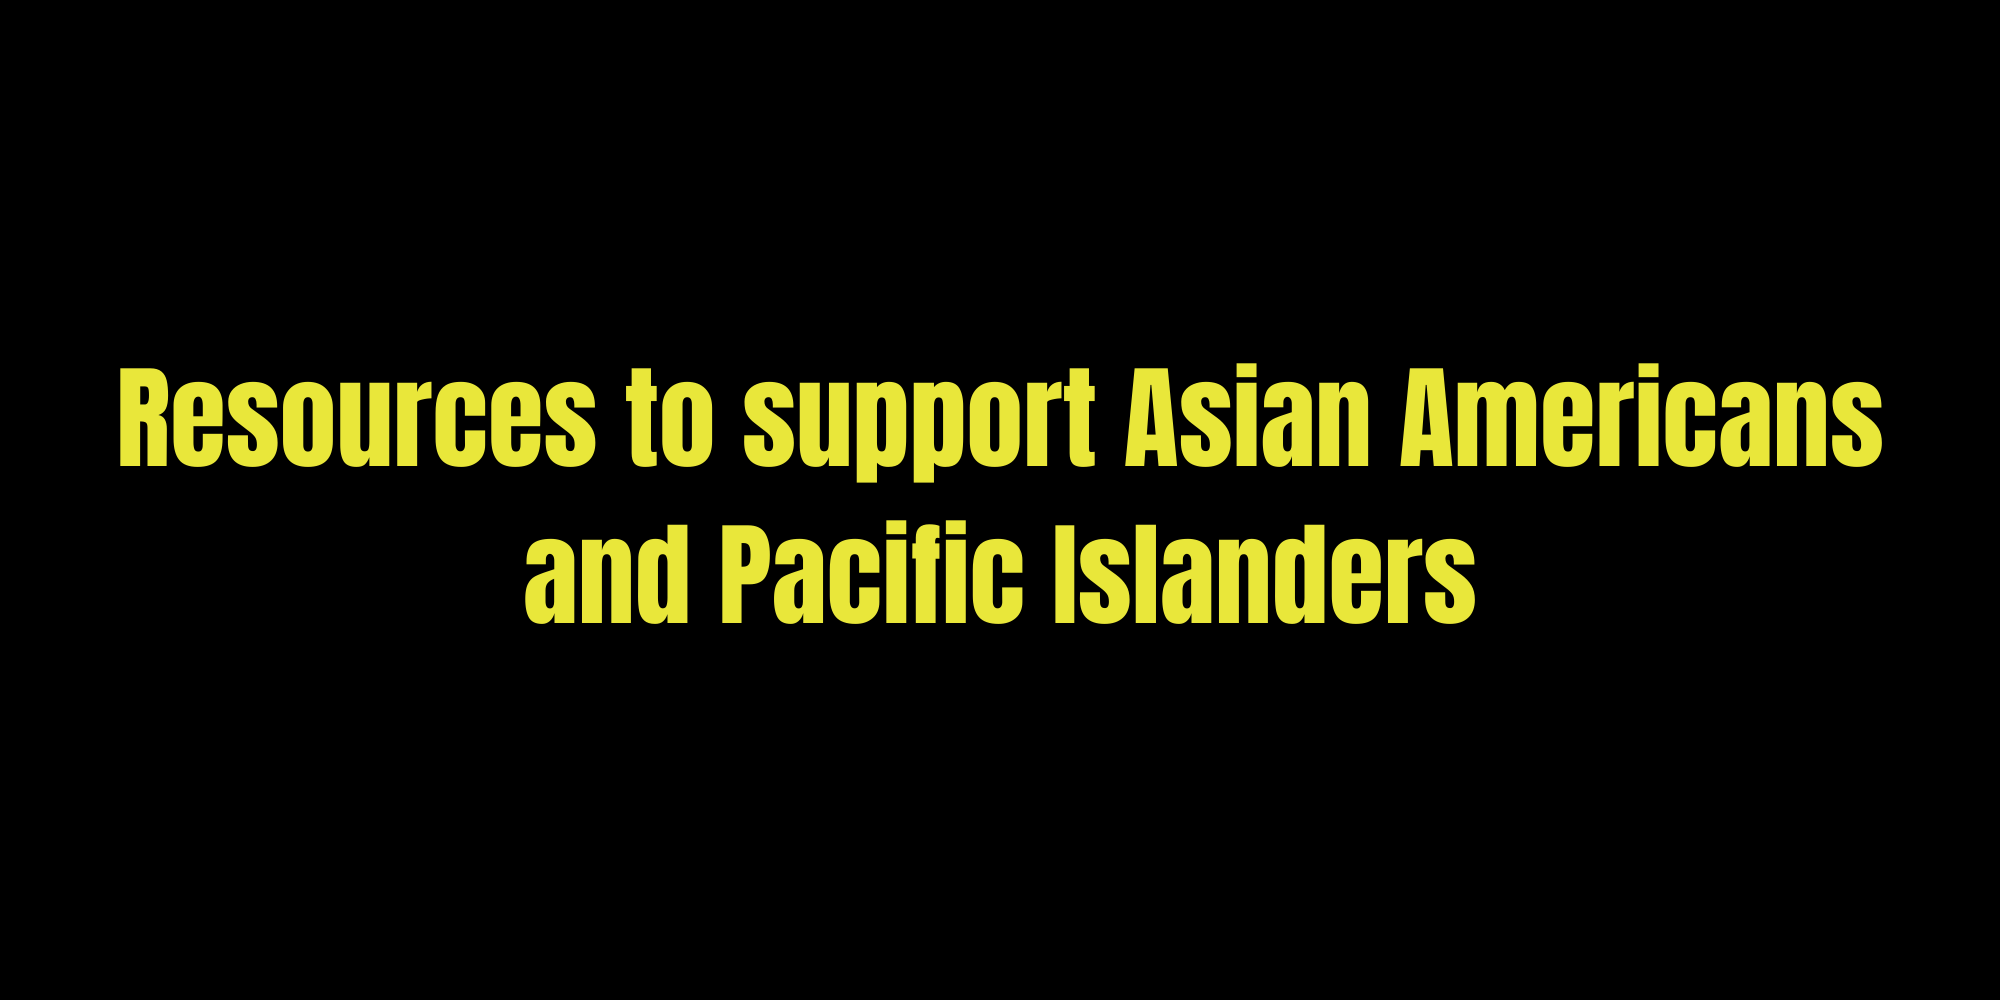 Resources to support Asian Americans and Pacific Islanders